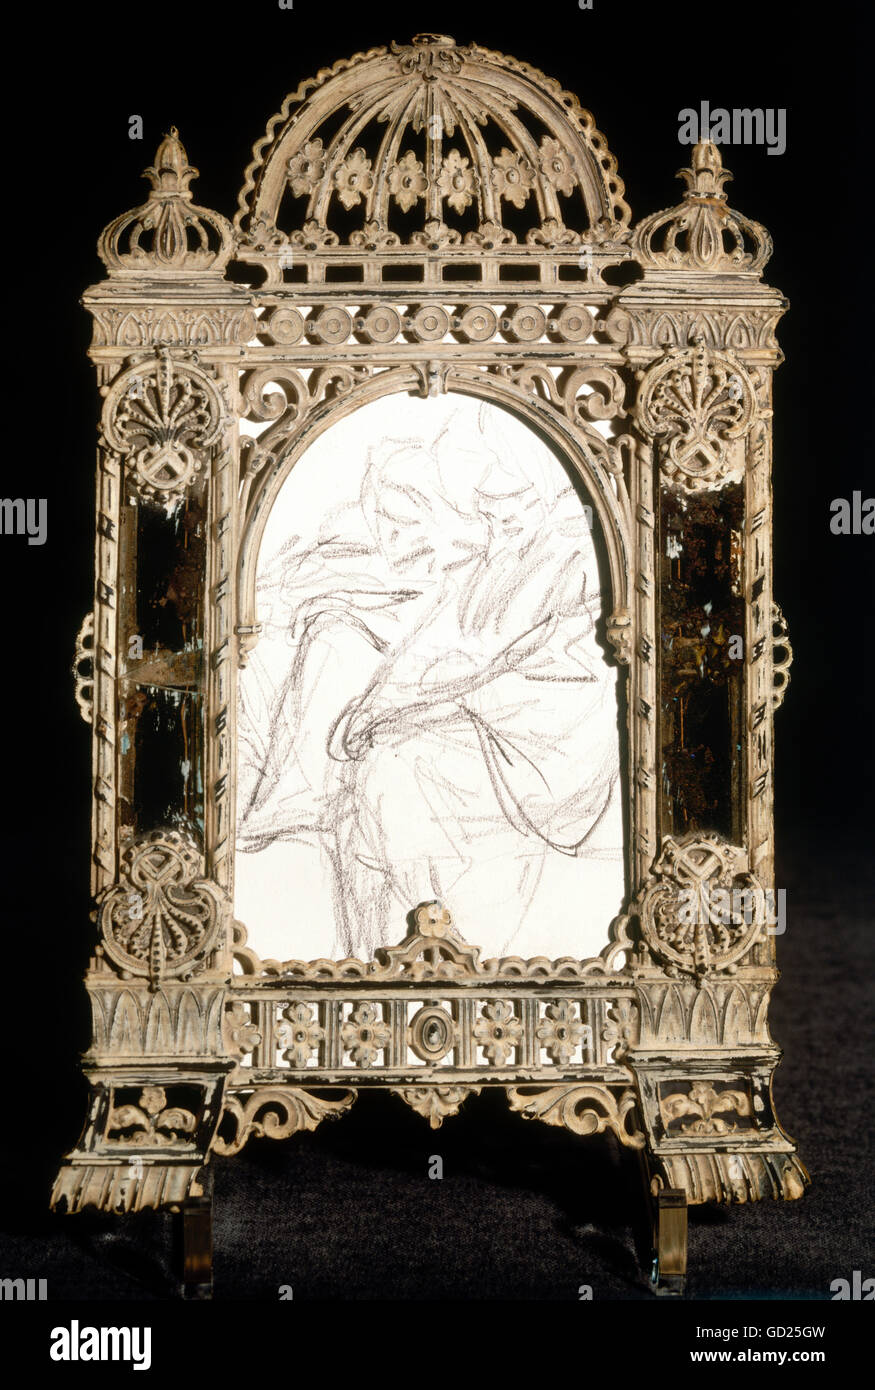 fine arts, Spitzweg, Carl, (1808-1885), sketch of a Turkish man, pencil drawing, small tin frame with mirror inset, Stock Photo